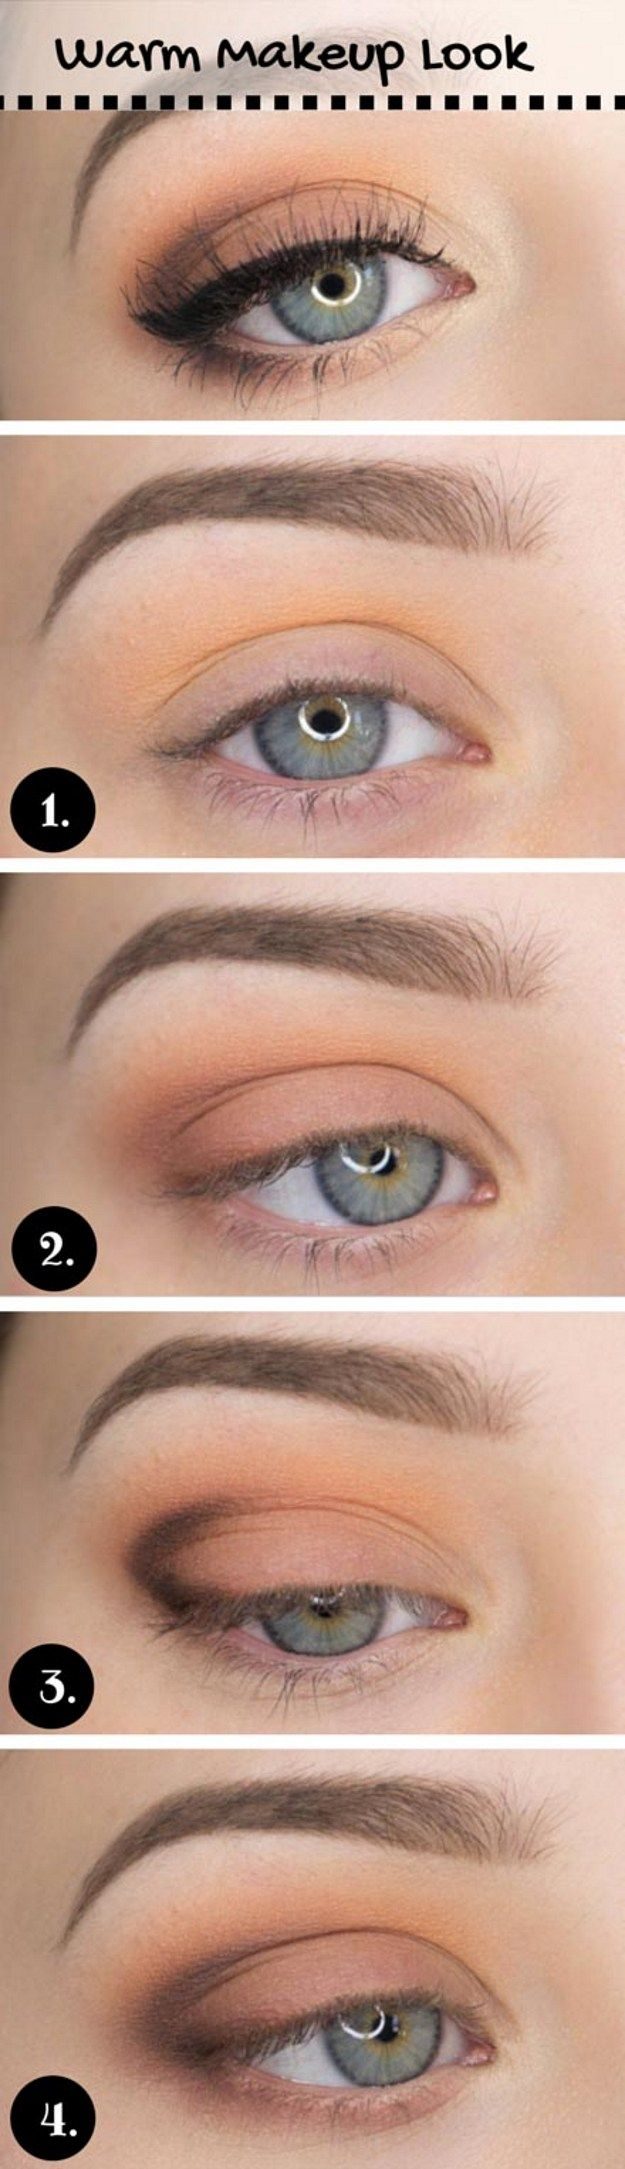 Warm Makeup Look